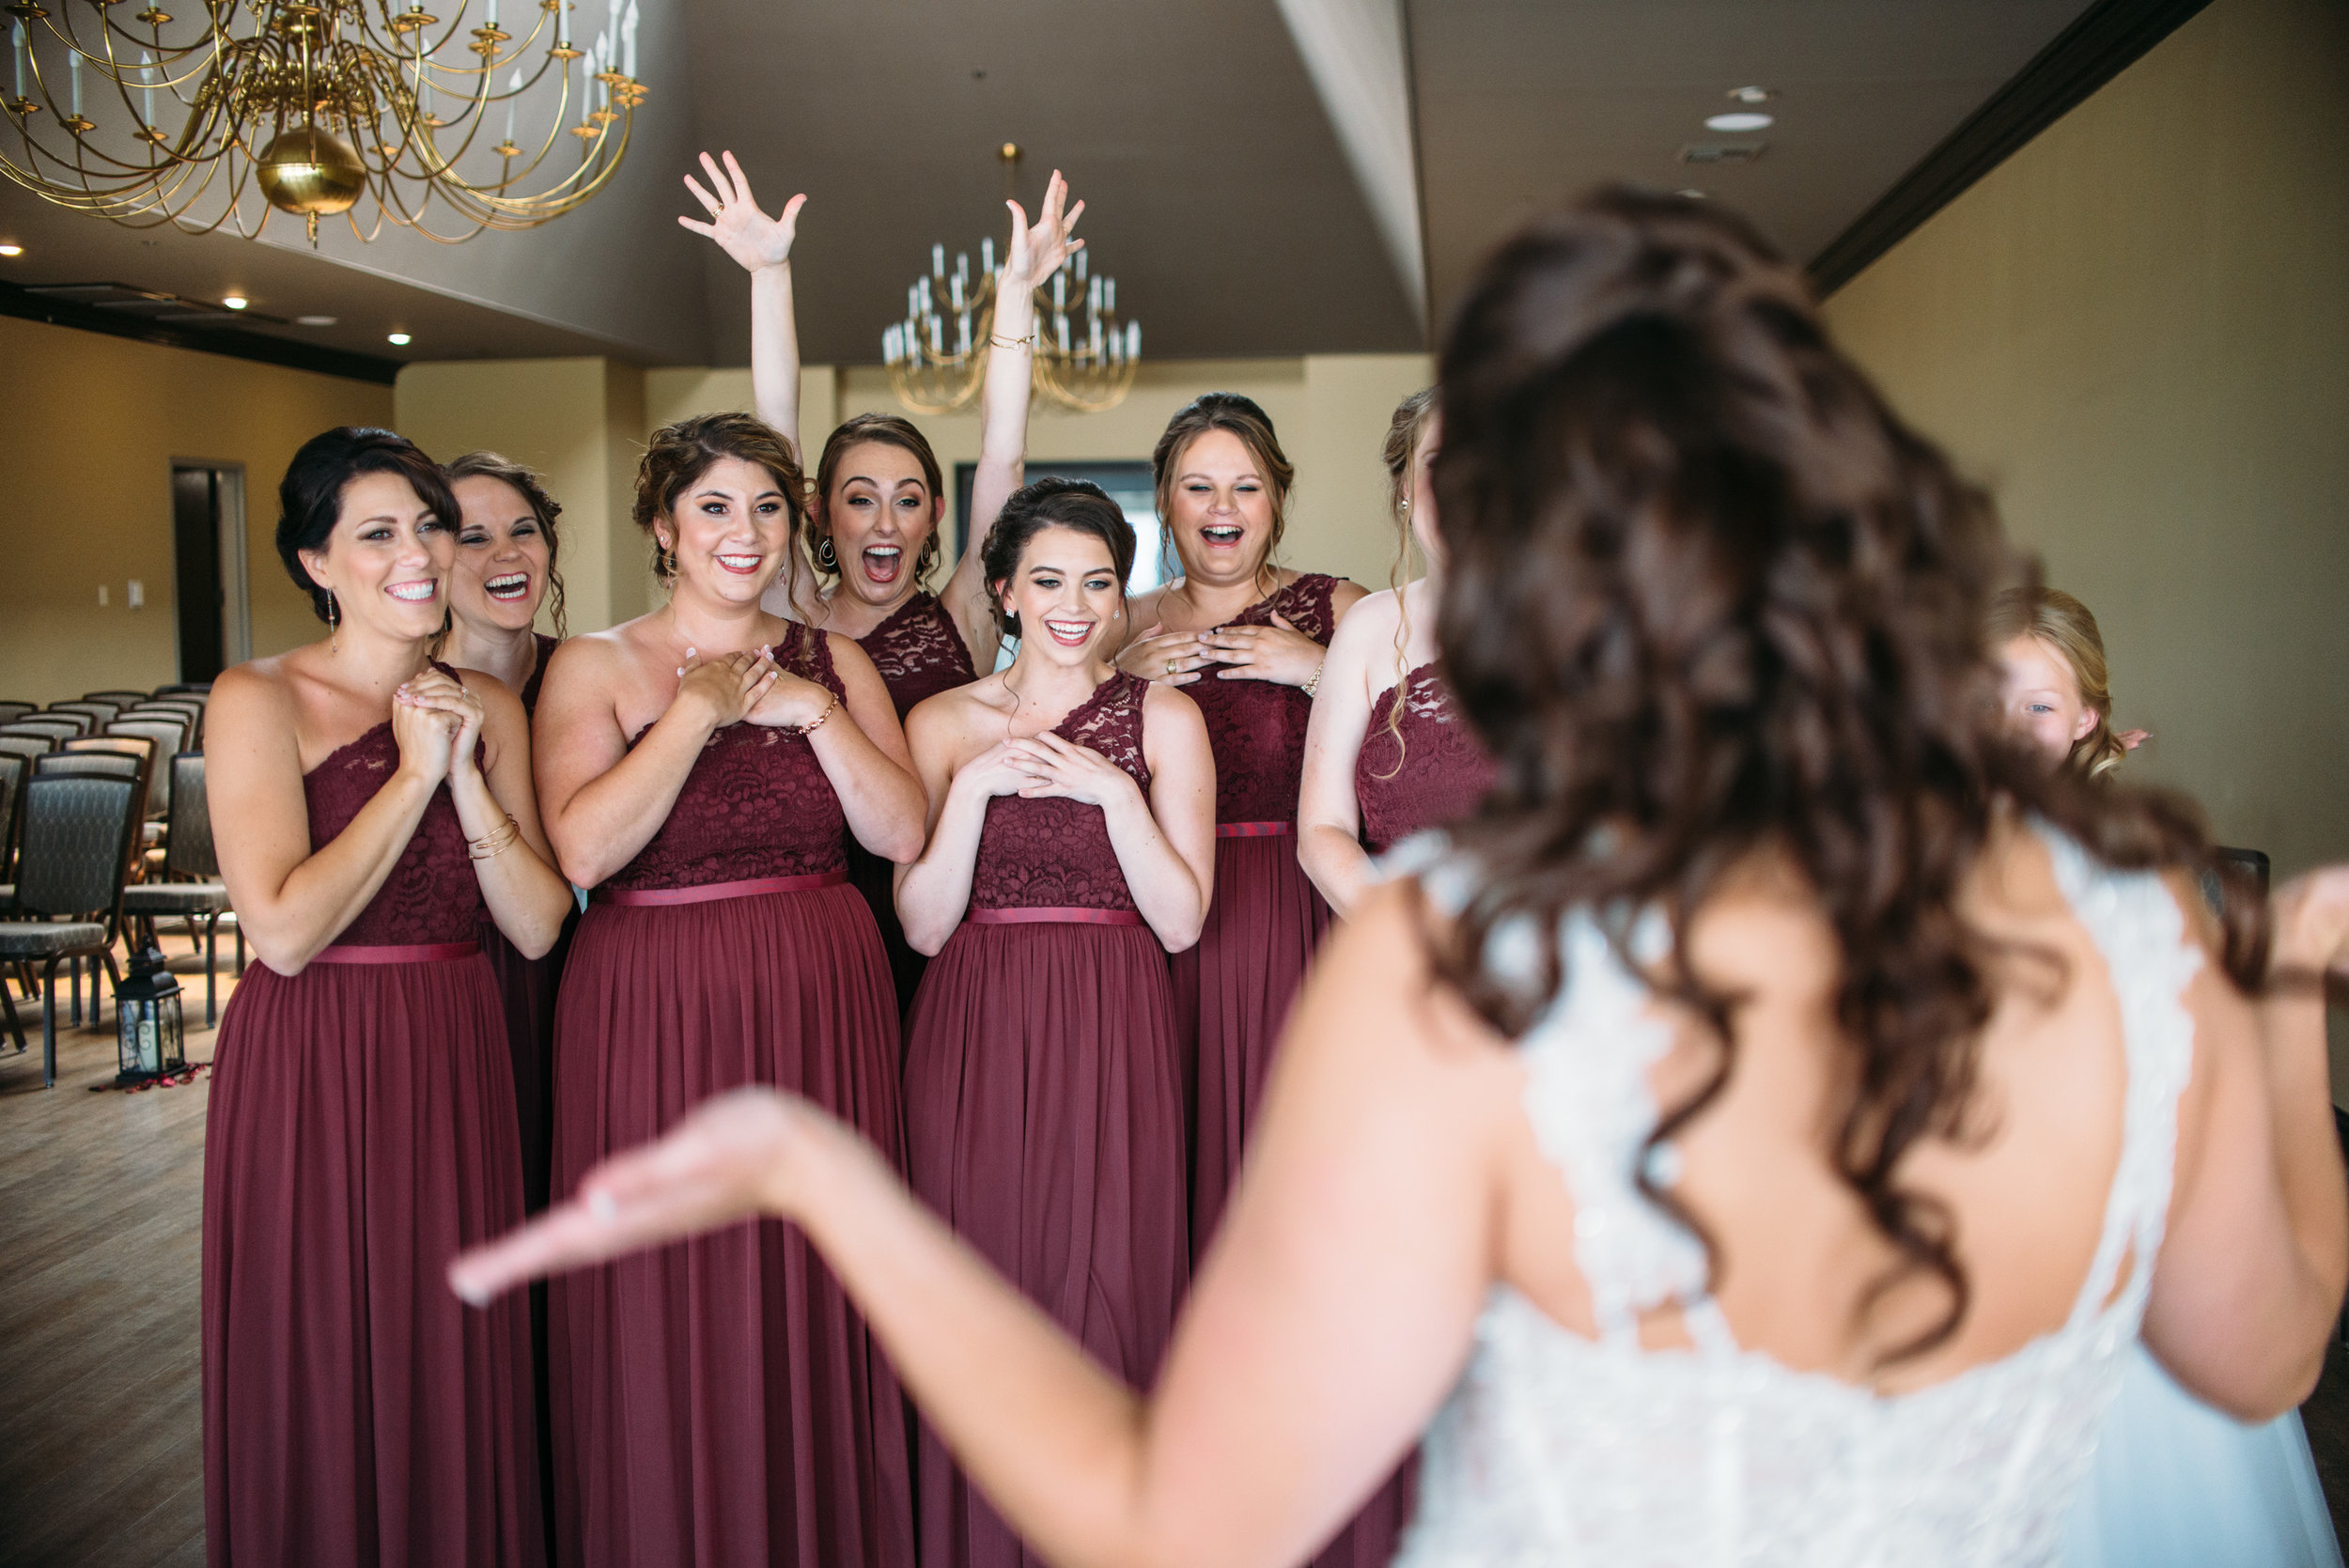 PhillipsEventCenter-AggieWedding-CollegeStationPhotographer_11.jpg